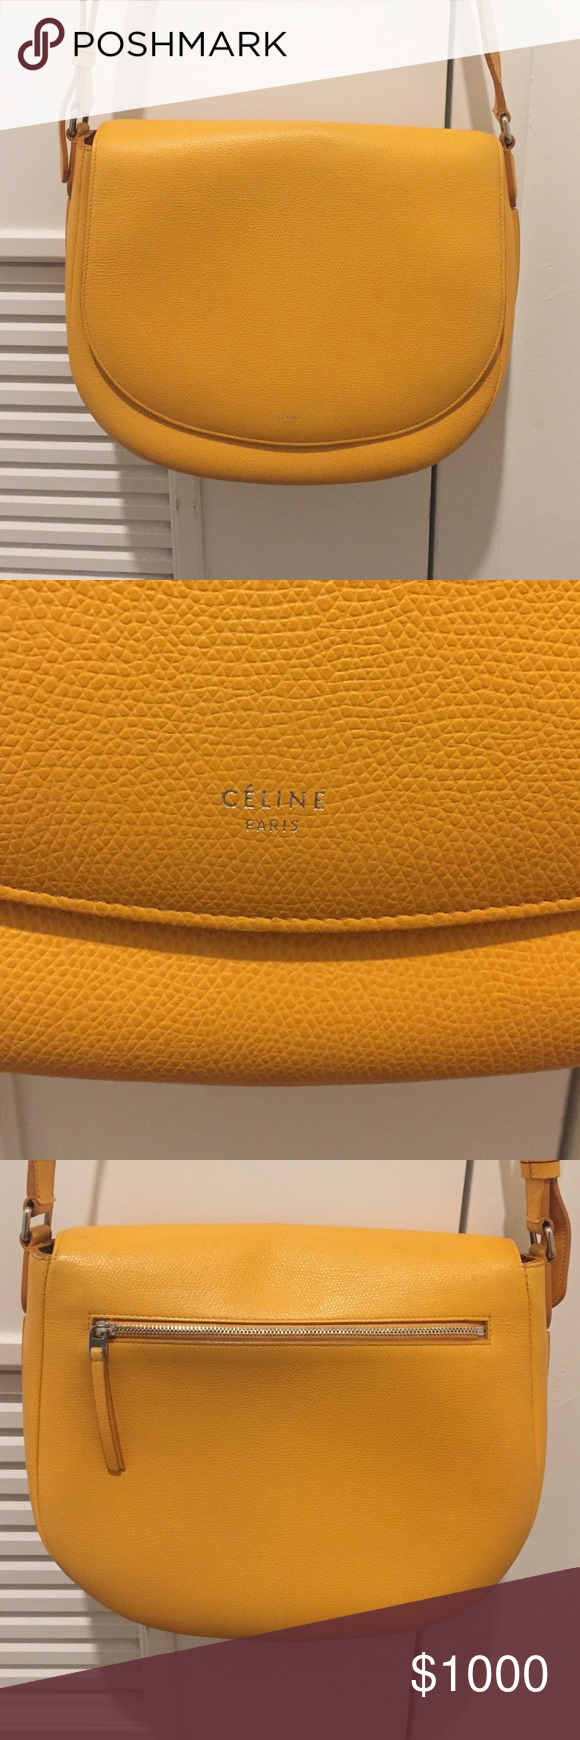 Celine bag Yellow cross body or shoulder Celine bag ..perfect condition inside and out with dust bag Celine Bags Crossbody Bags